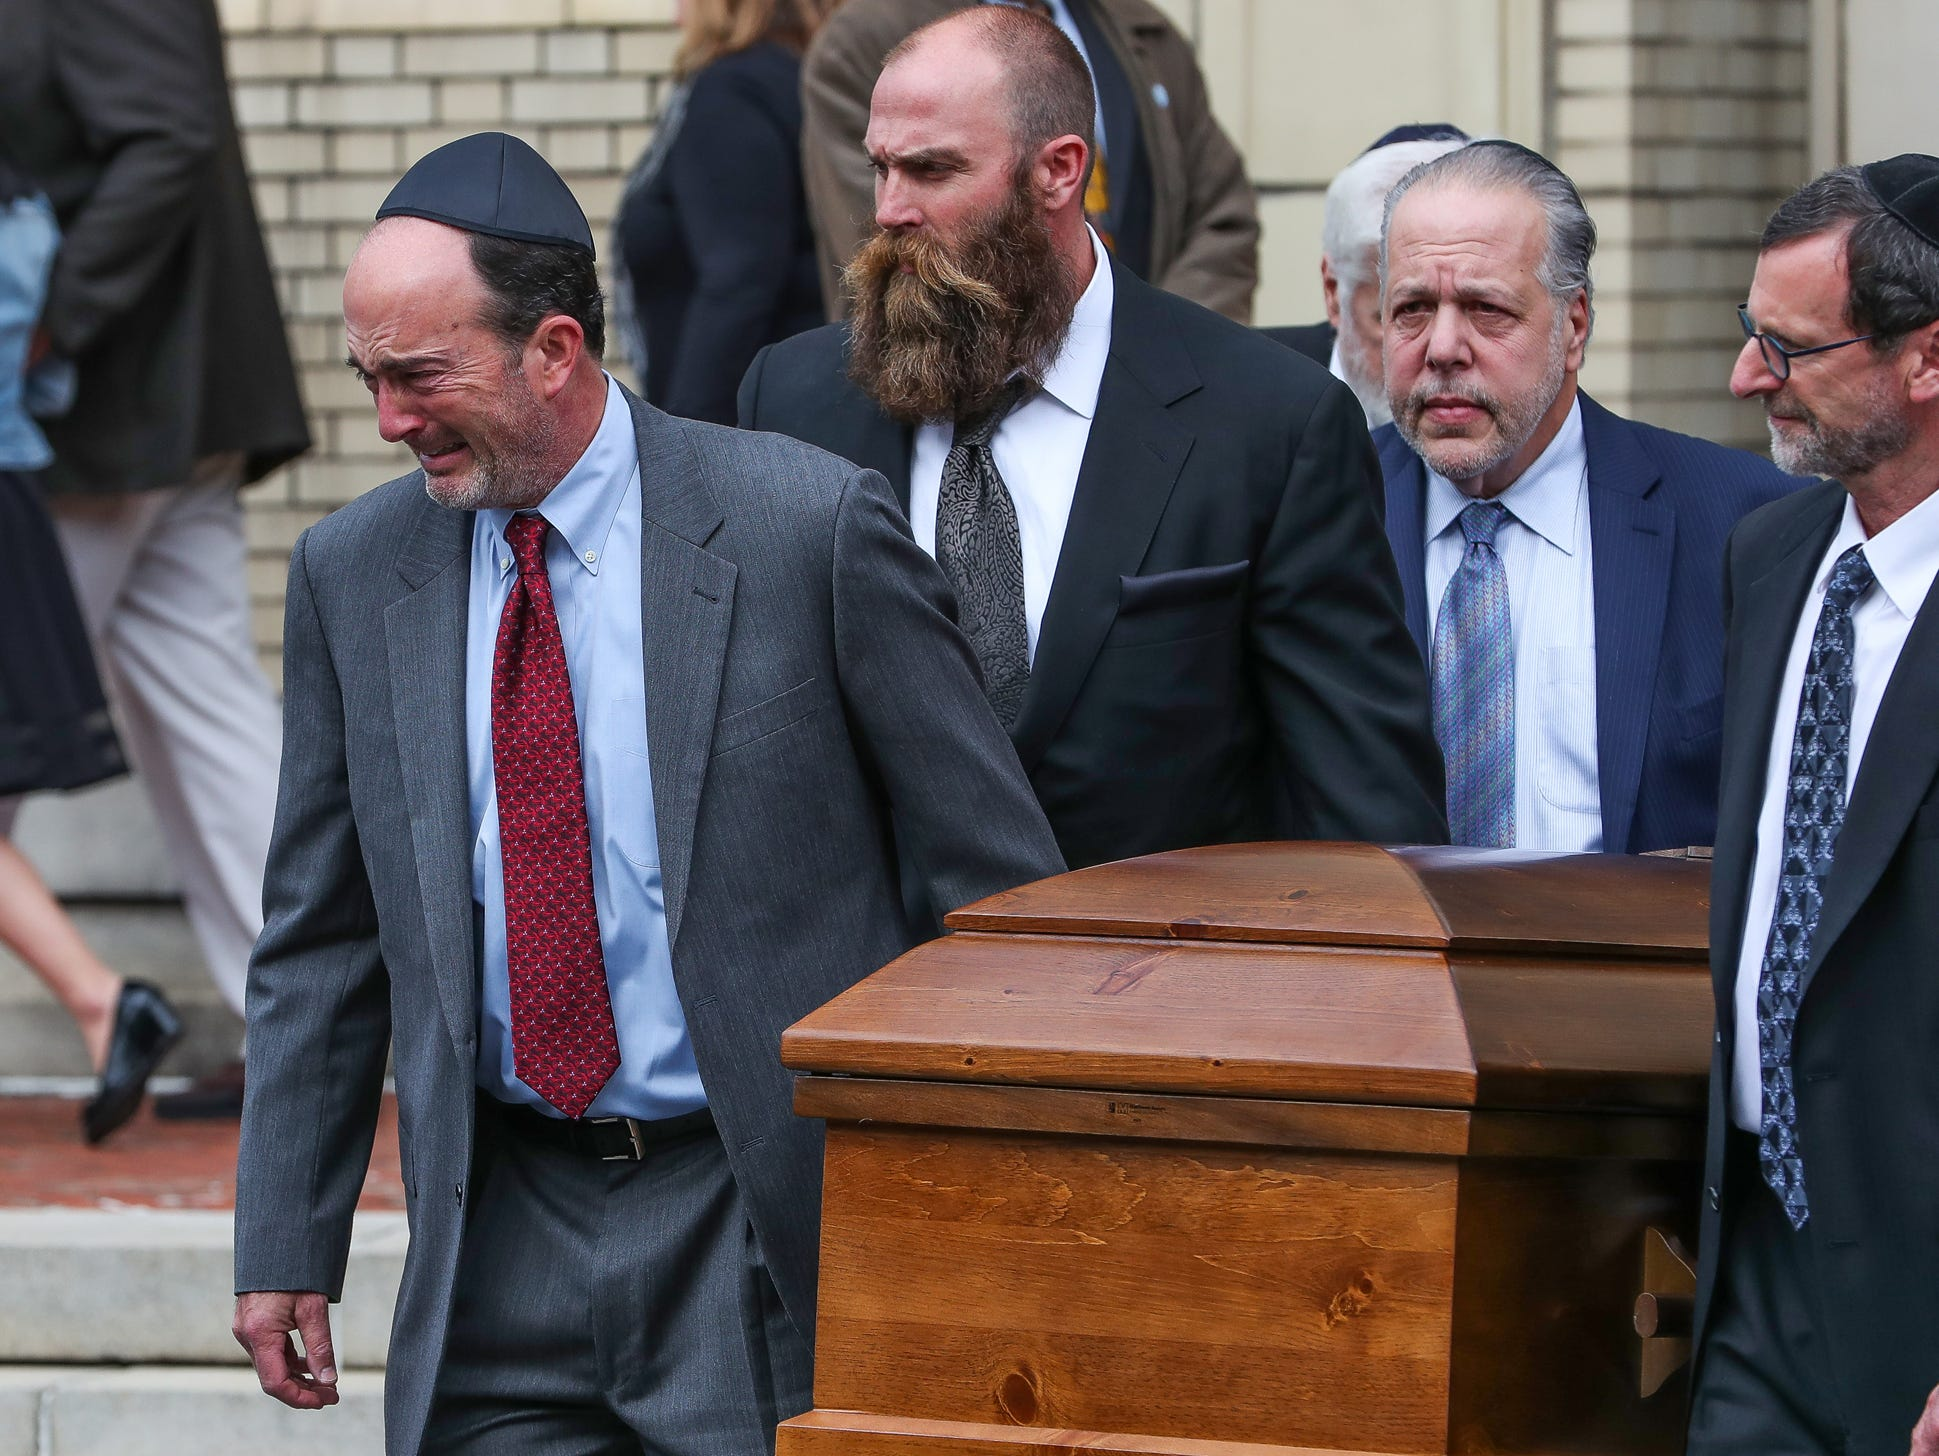 The caskets of brothers David and Cecil Rosenthal are carried out of Rodef Shalom Synagogue in Pittsburgh on Tuesday, Oct. 30, 2018. The two brothers were killed in the Tree of Life Synagogue shooting.